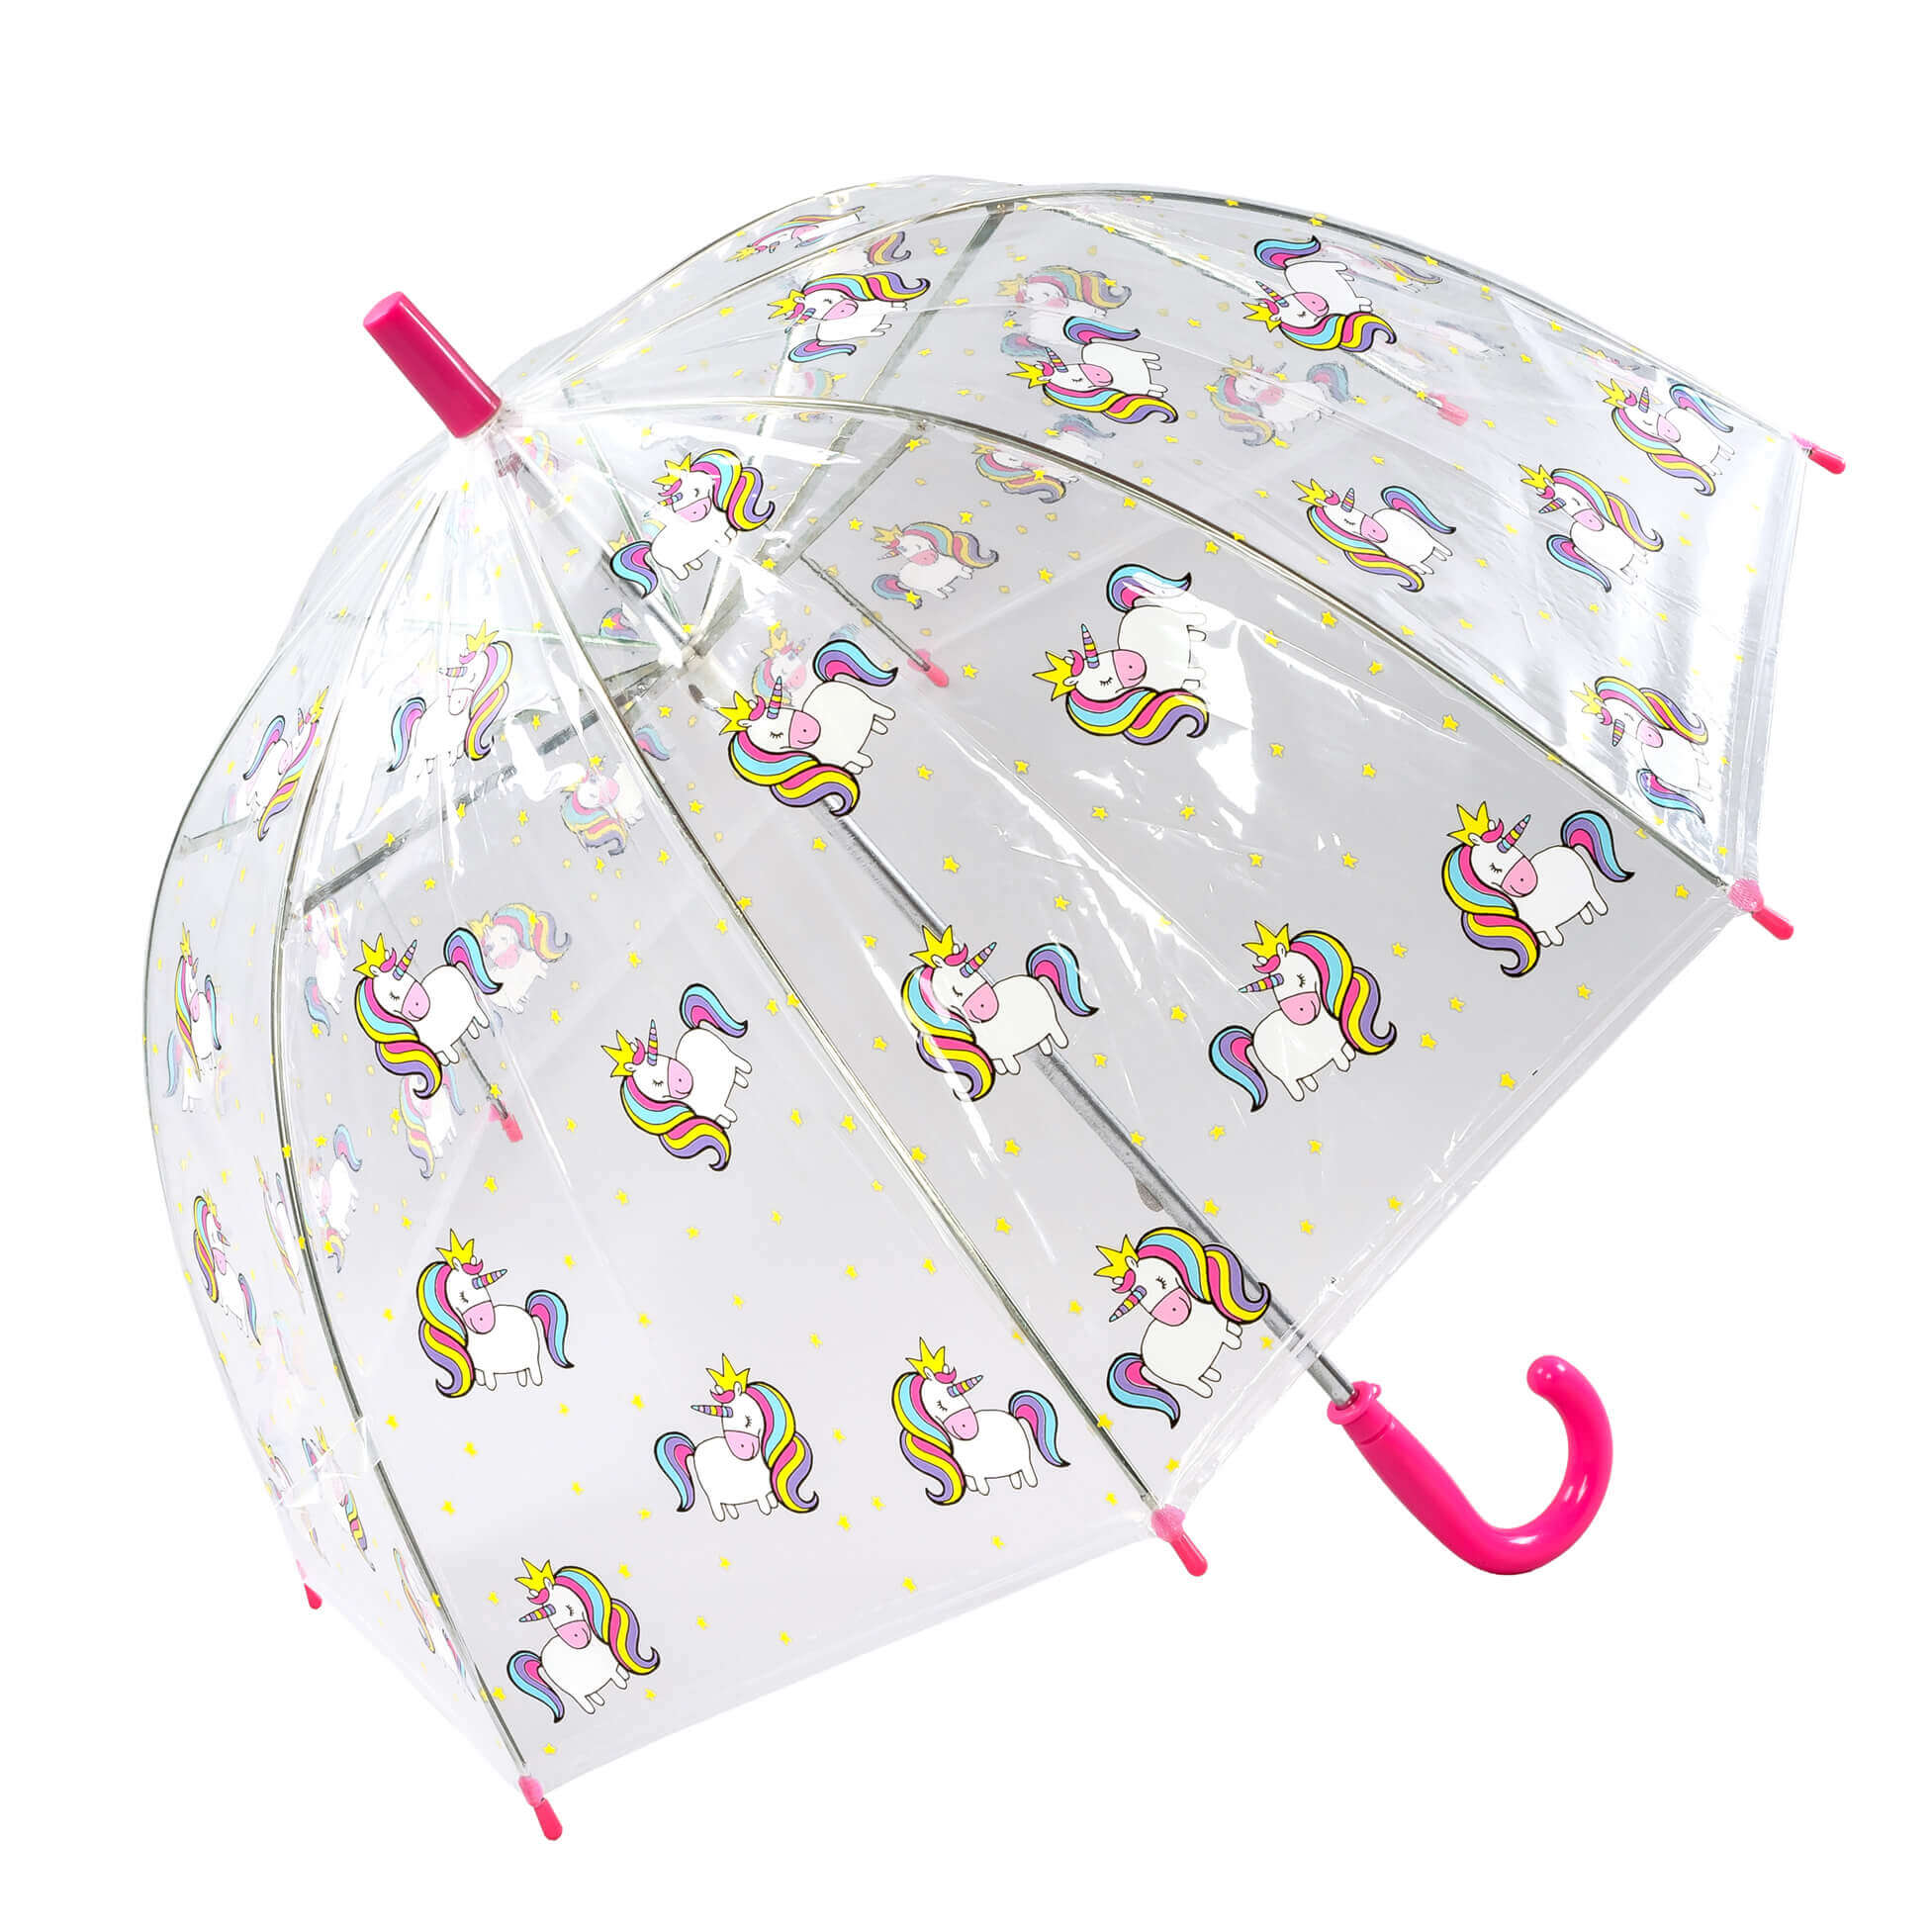 Click to view Kids Unicorn Umbrella (17025)